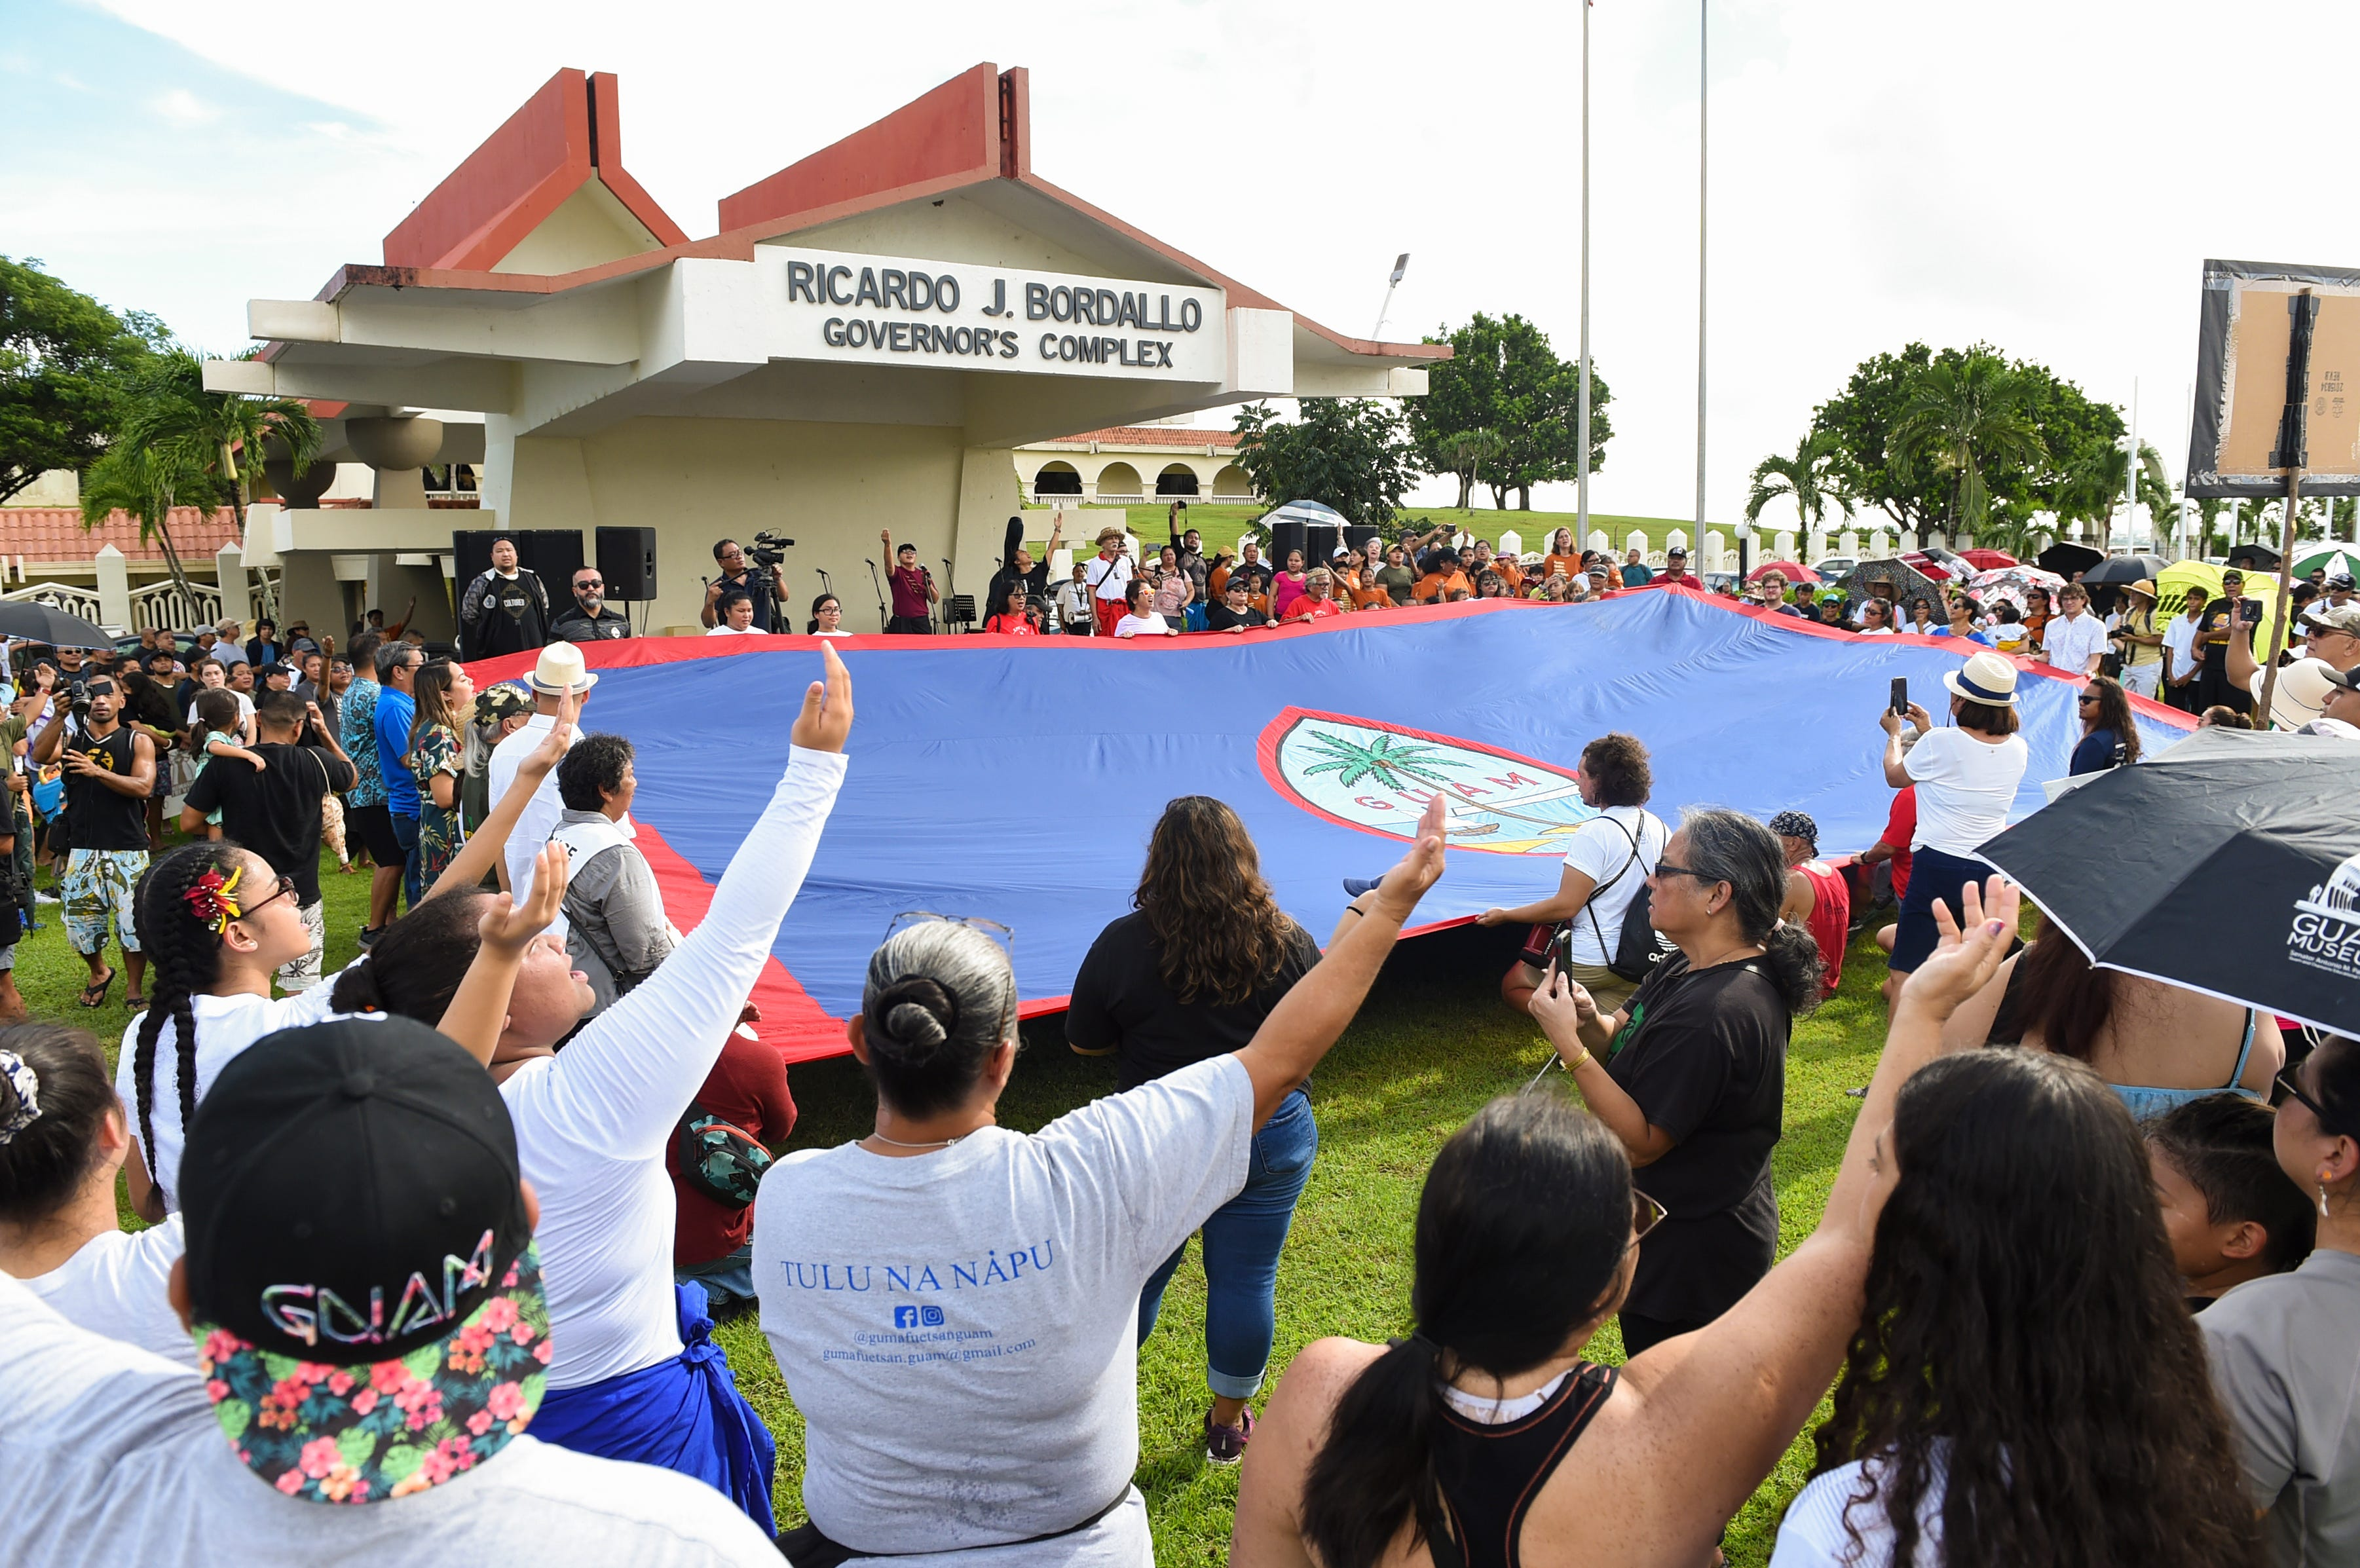 Self-determination supporters gather for the Fanohge: CHamoru March for Self-Determination event in Adelup on Sept. 2, 2019.